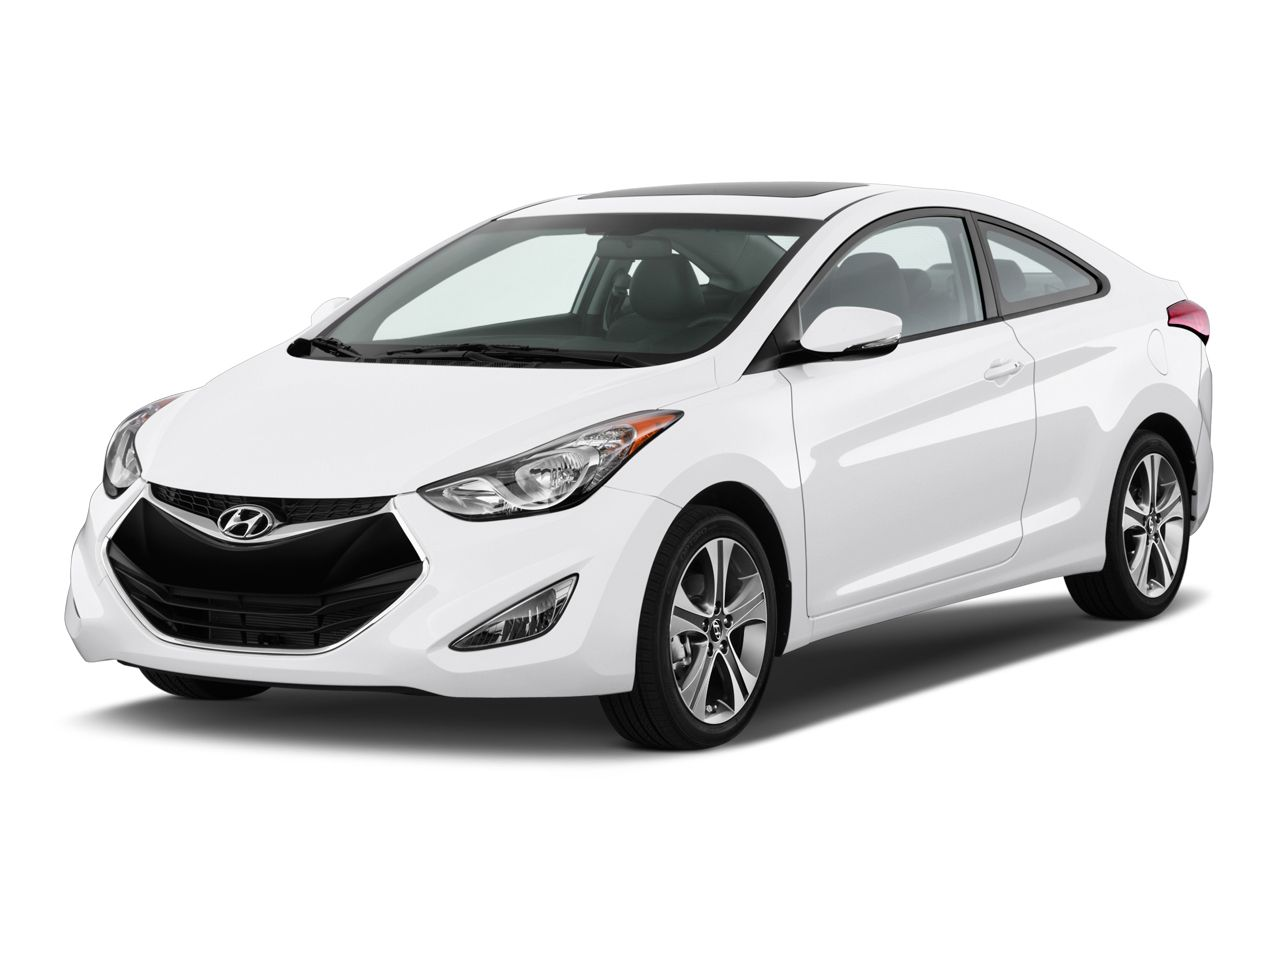 hyundai elantra vs kia forte compare cars car comparisons pinterest compare cars cars. Black Bedroom Furniture Sets. Home Design Ideas